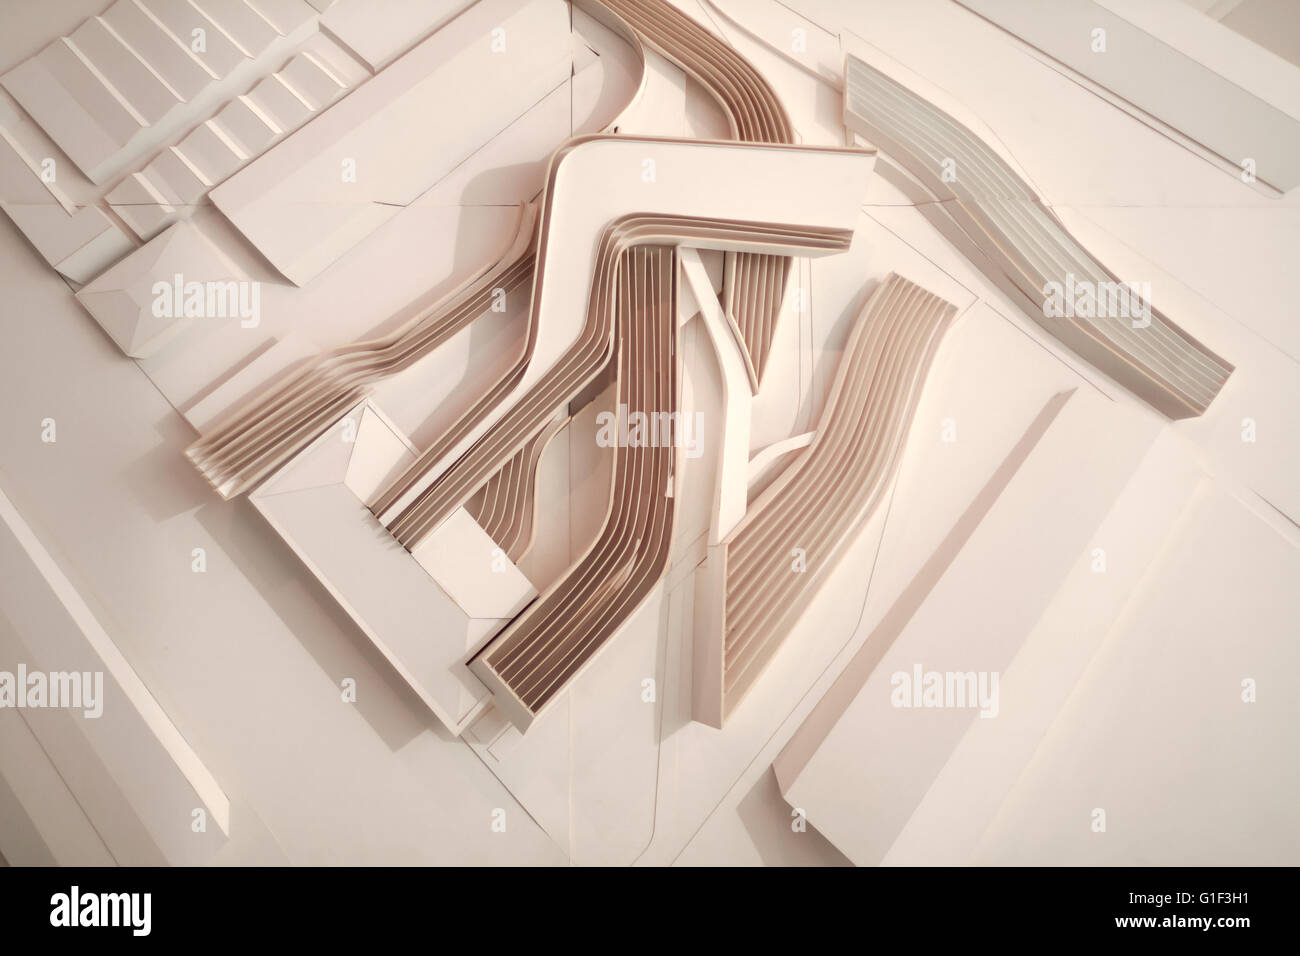 Rome, Italy - May 29, 2010: original diorama version of Maxxi's project by Zaha Hadid as shown in the first - Stock Image